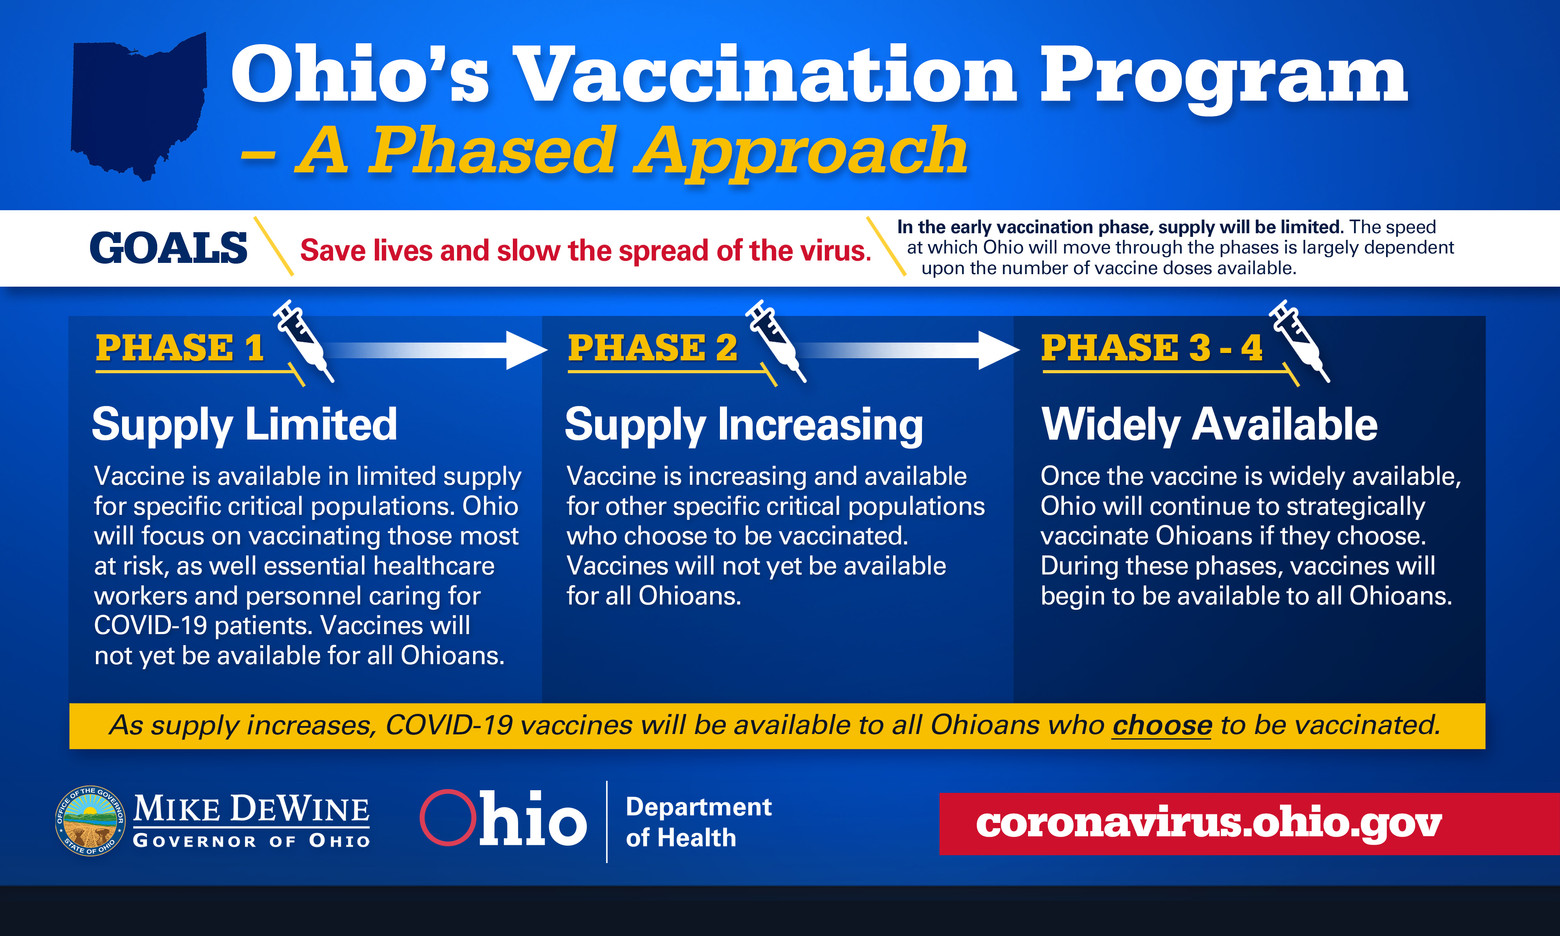 Vaccination Program Phases